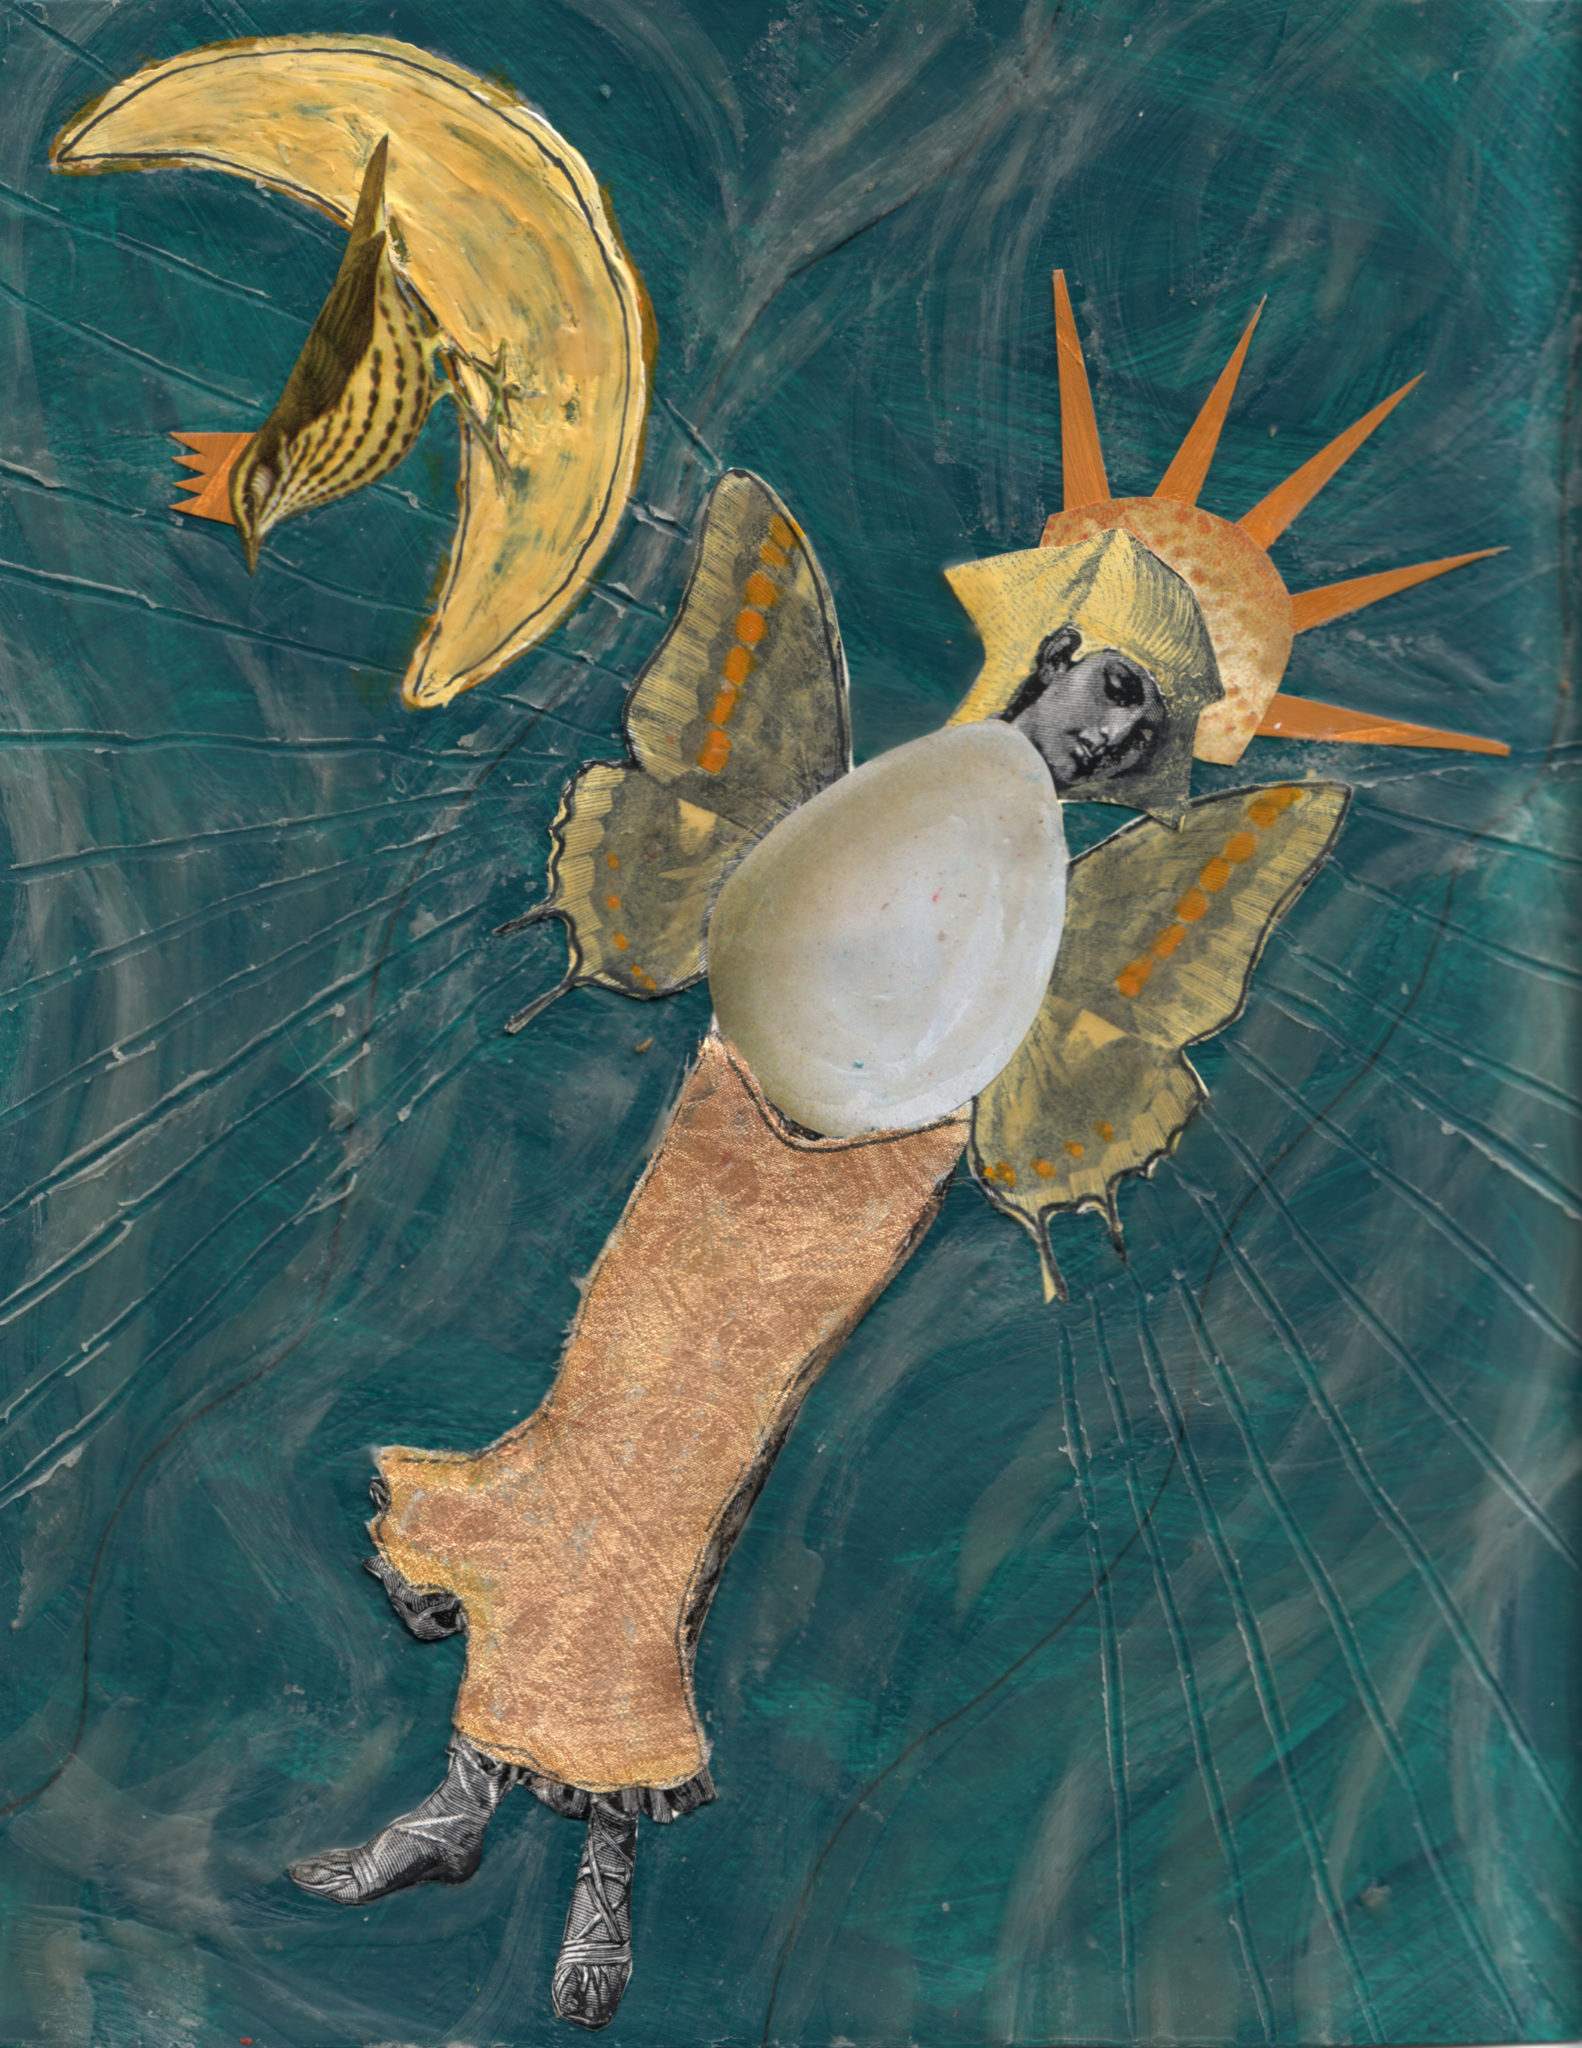 Woman Letting Go, mixed media collage by Courtney Putnam